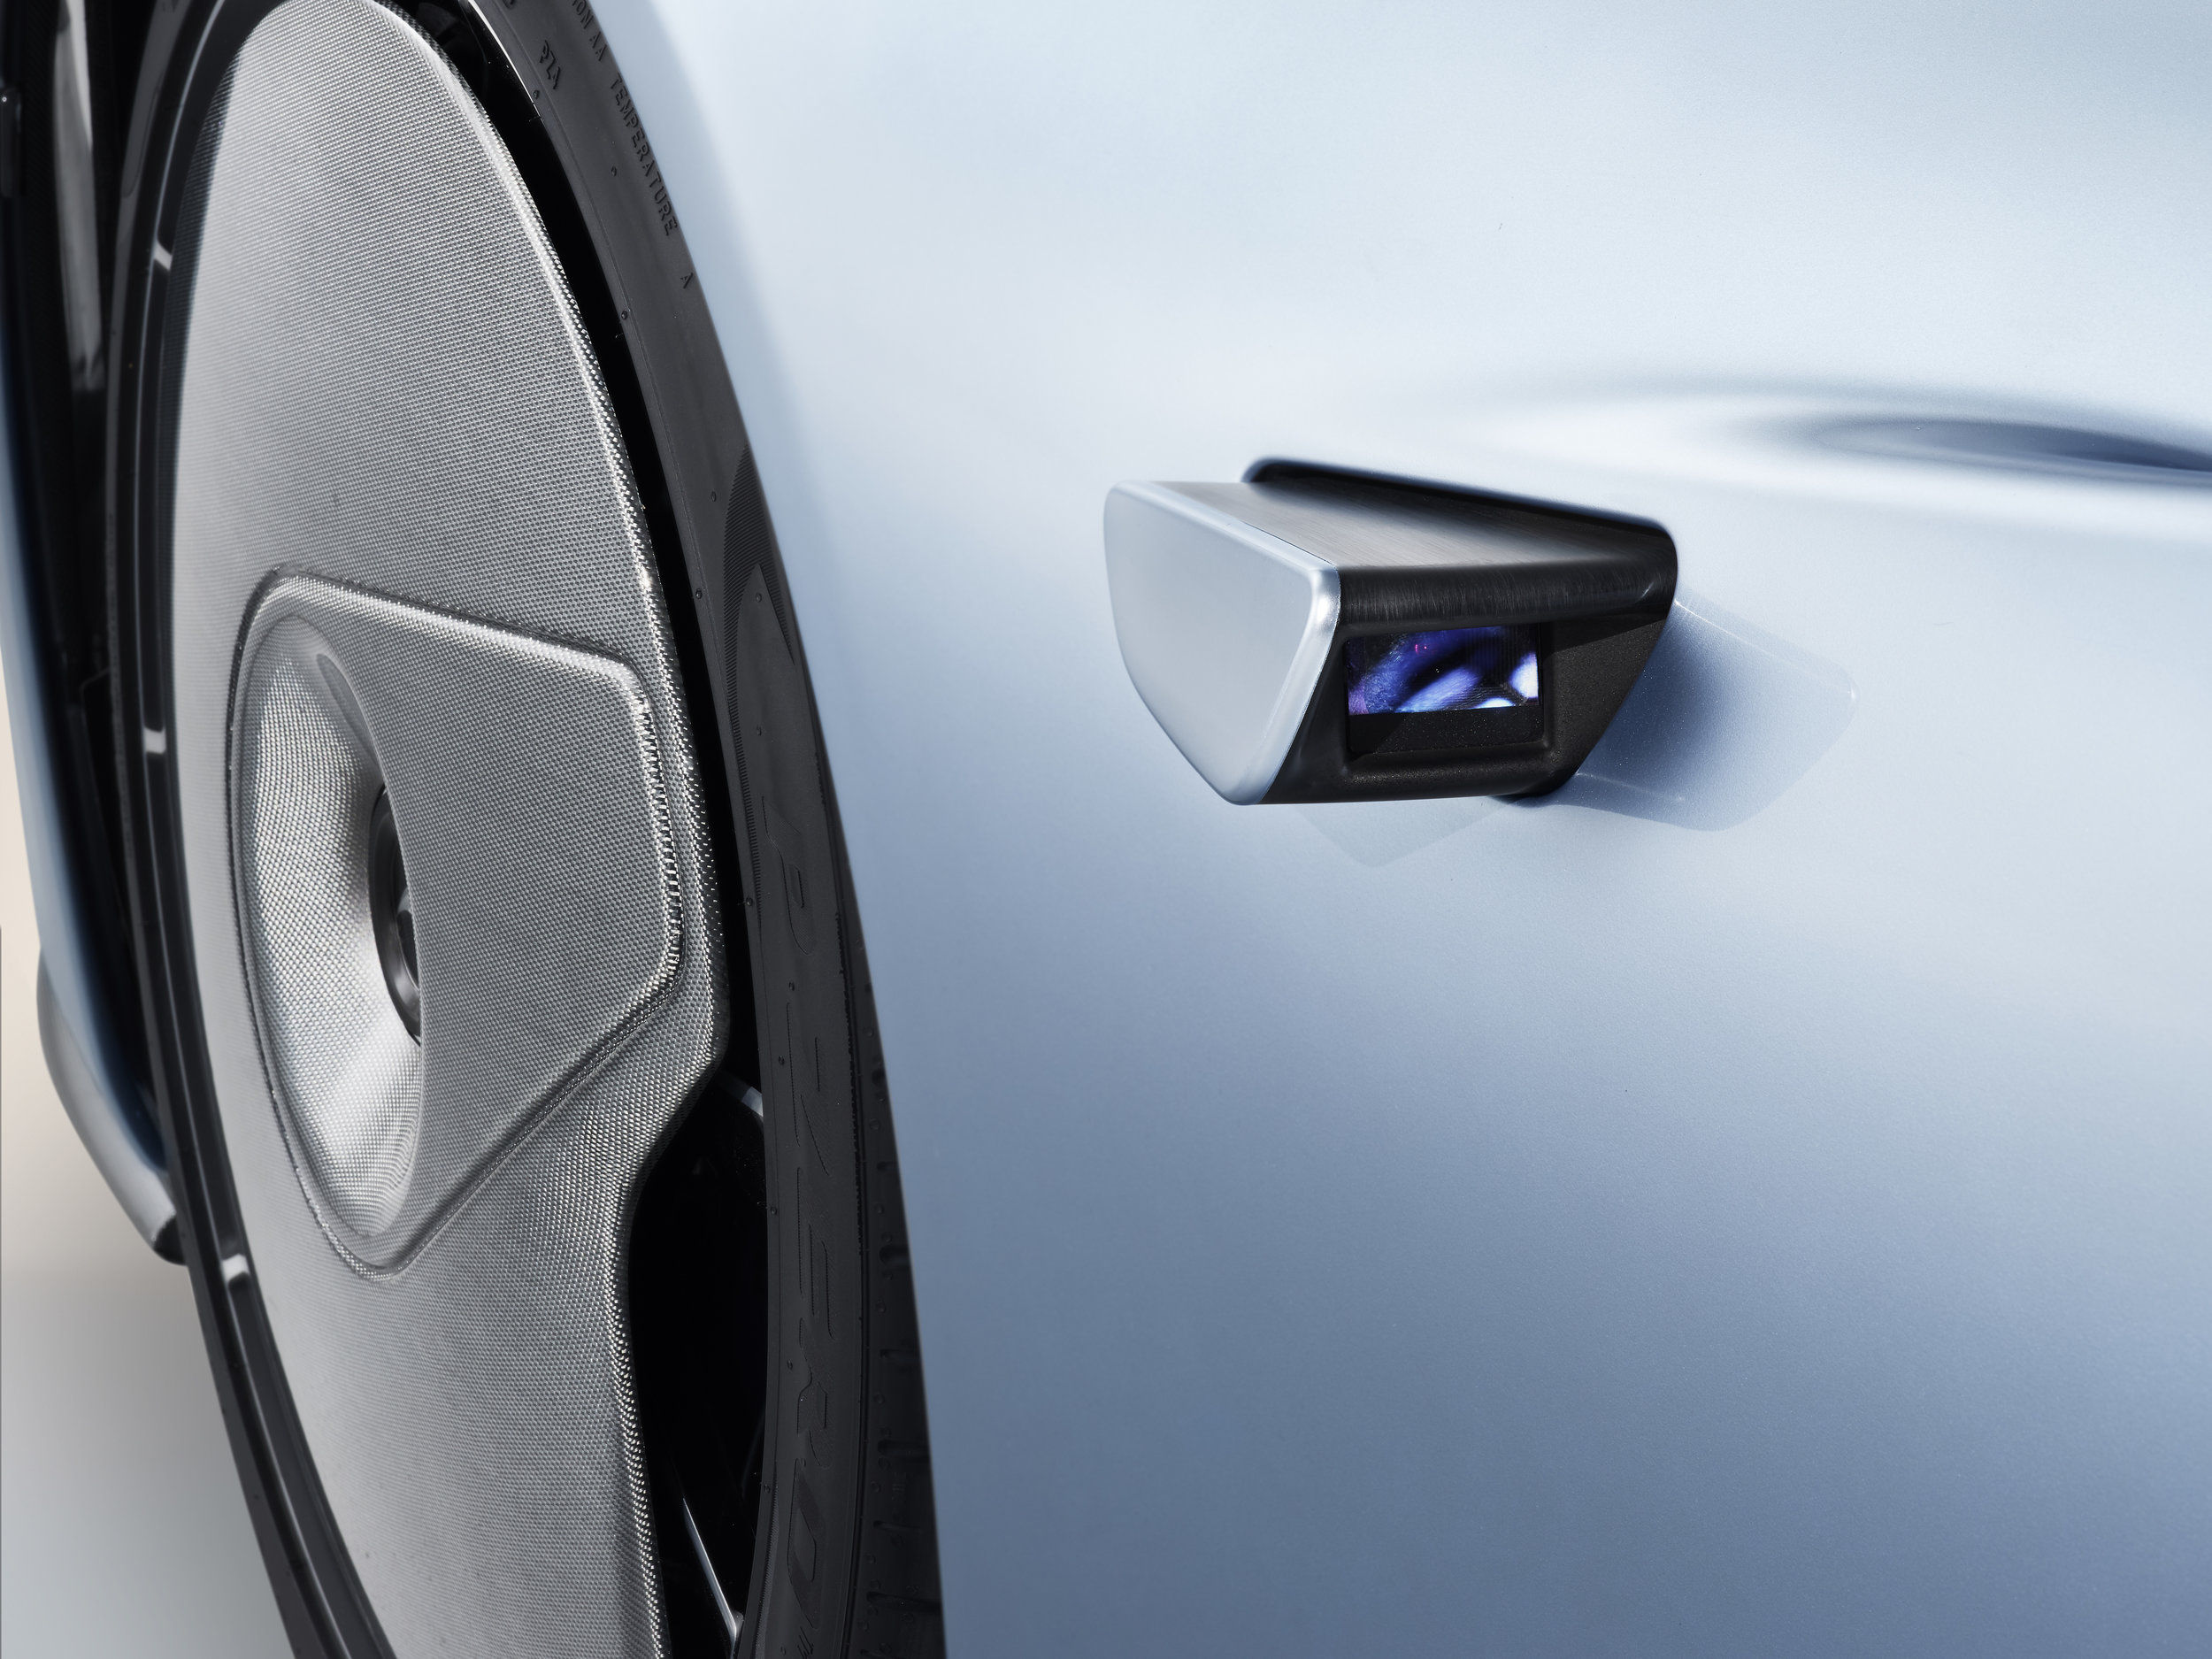 External cameras replace wing / door mirrors. Images are then shown on monitors to the side of the driver.